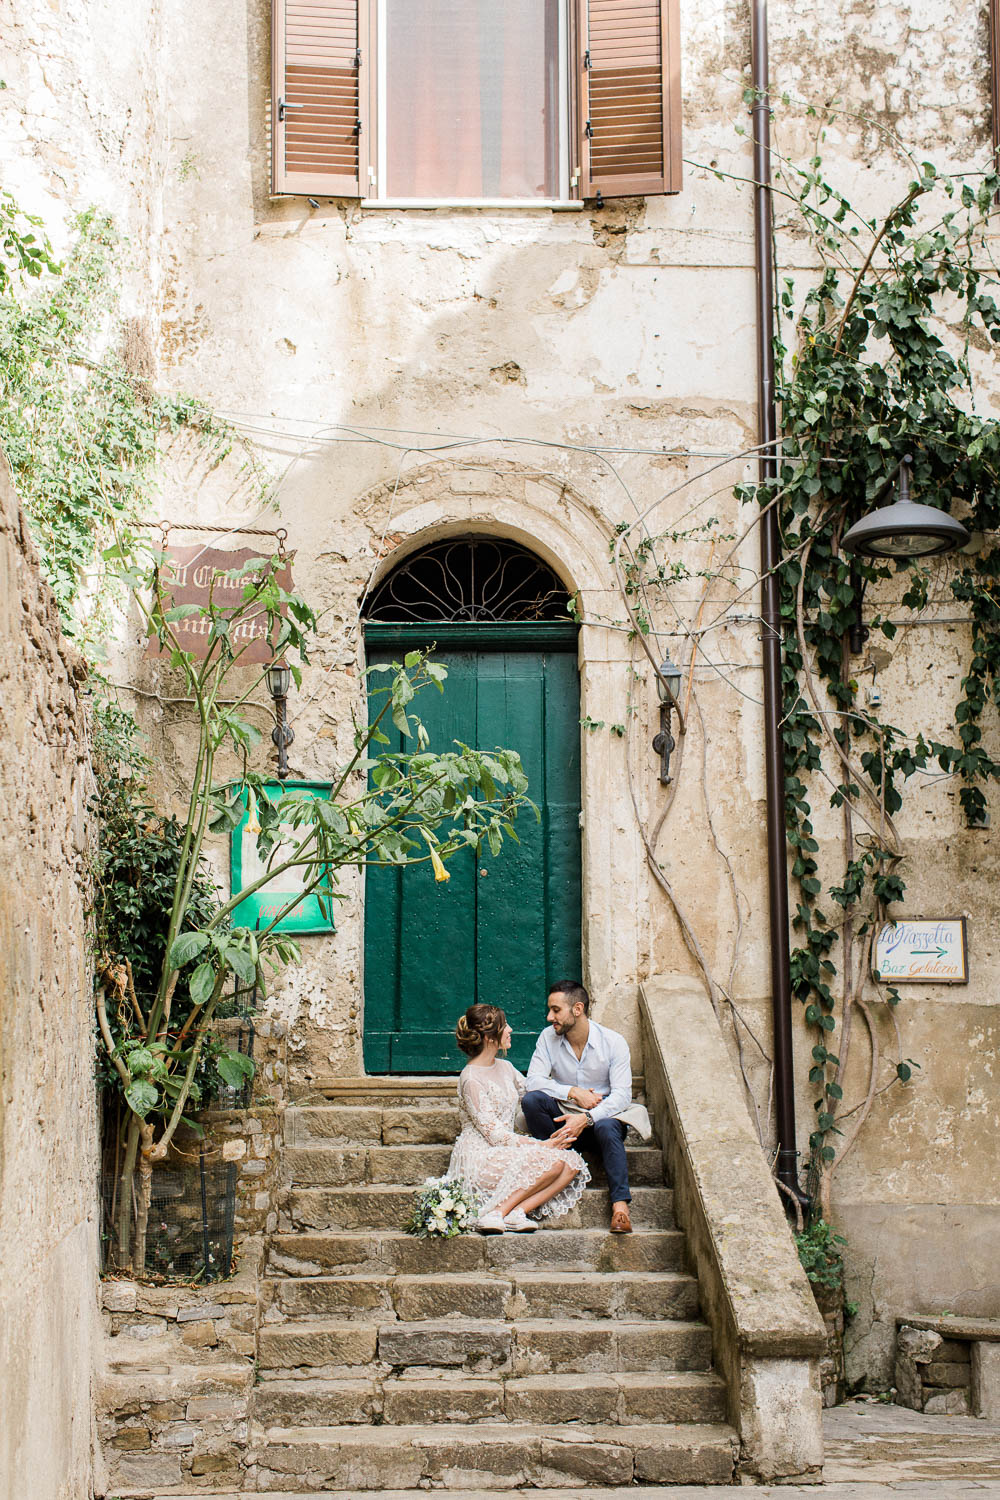 castellabate italy wedding photography-28.jpg